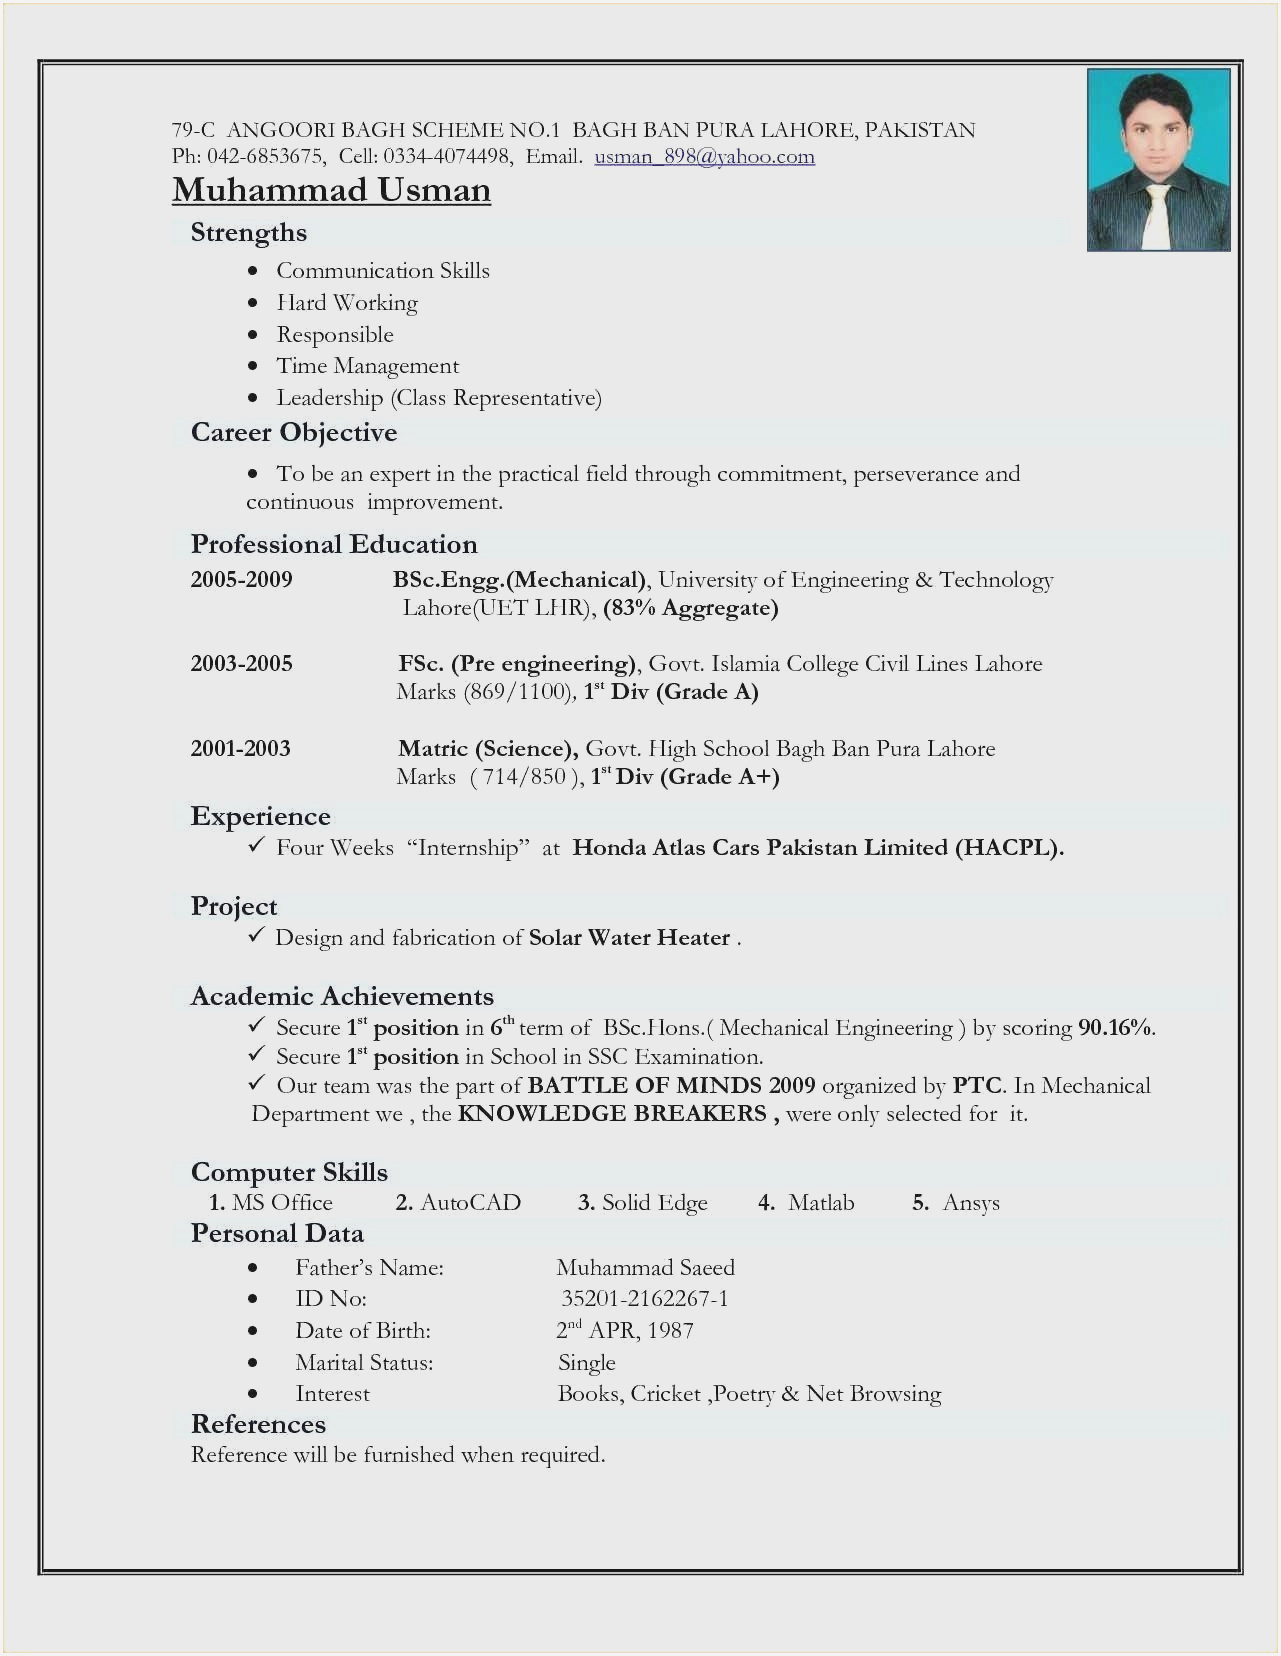 sample resume for mba hr freshers pdf management fresher now account login crime scene Resume Management Fresher Resume